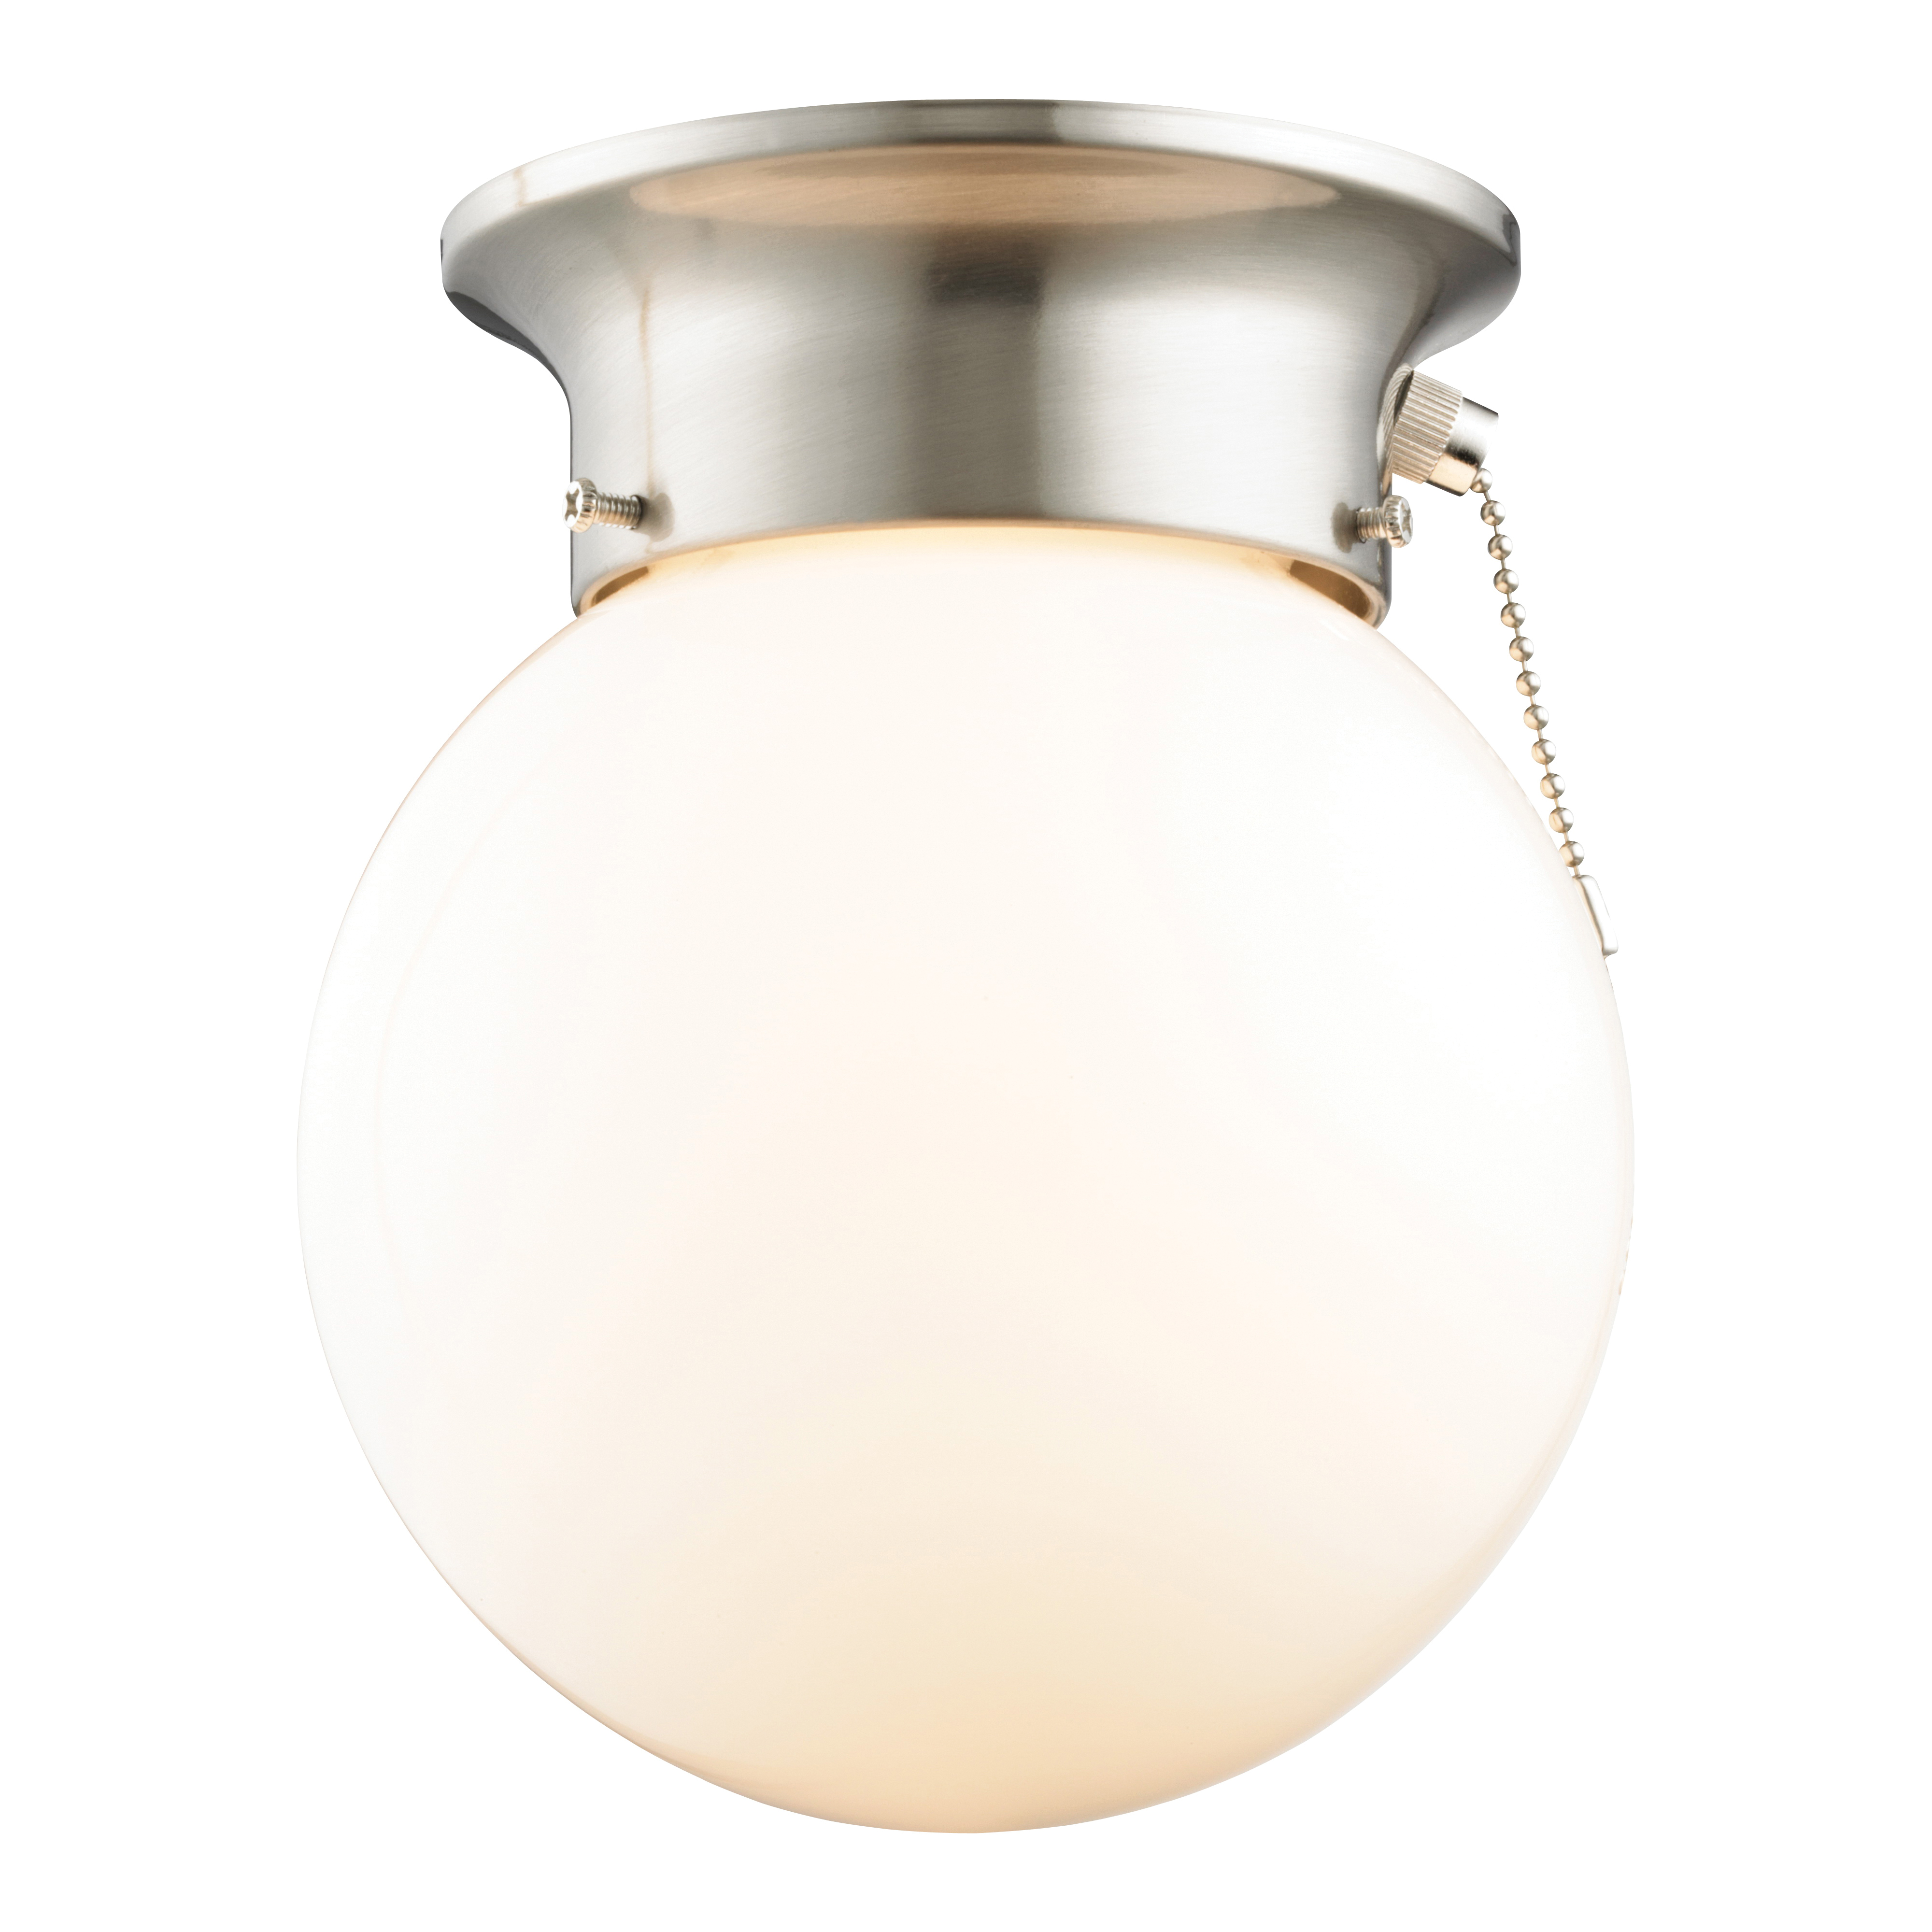 Picture of Boston Harbor F3015-3375-BN Ceiling Light Fixture, 60 W, 1-Lamp, CFL Lamp, Brushed Nickel Fixture